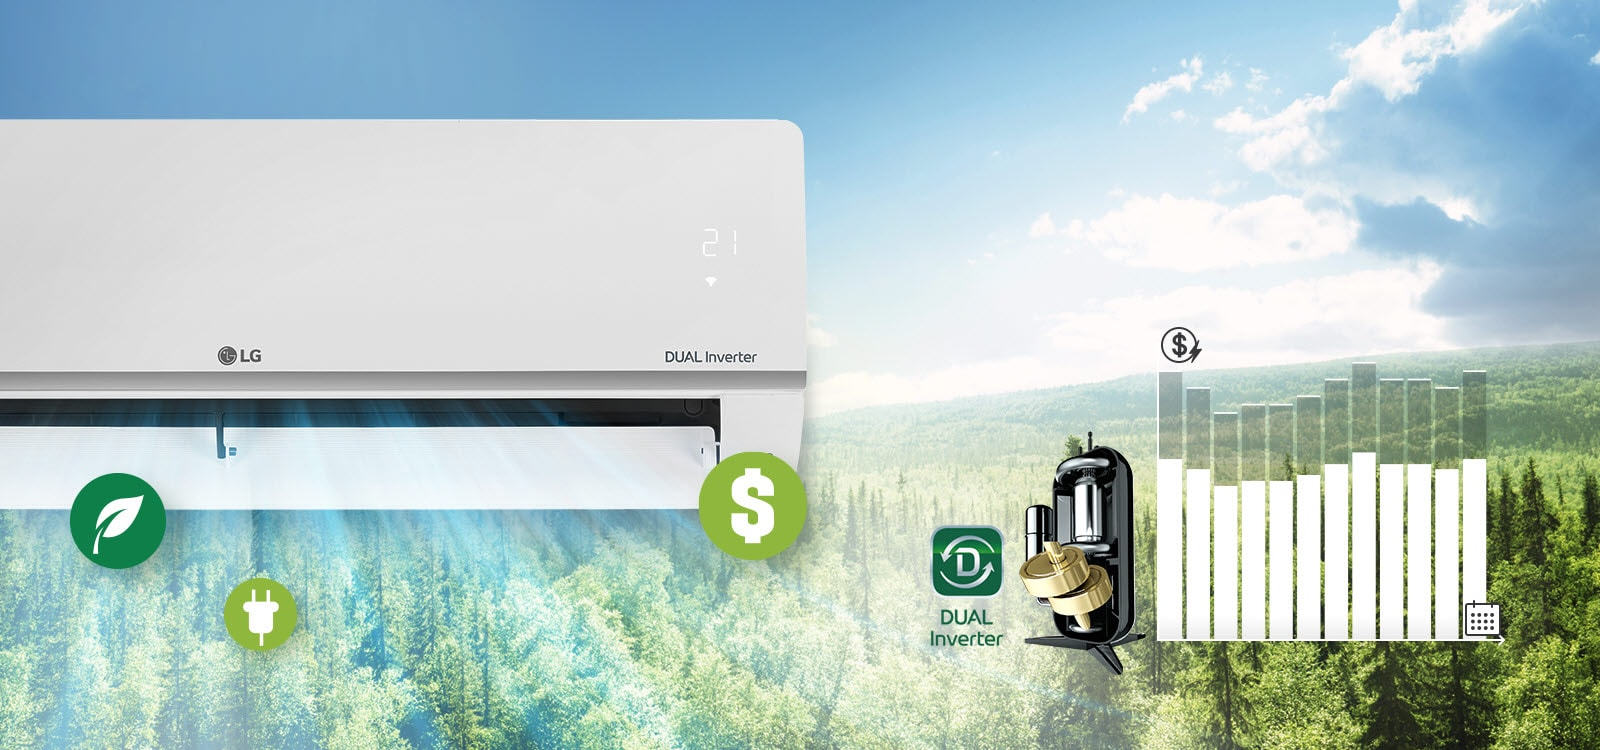 A forest landscape is in the background with half of the LG air conditioner visible on the side. The LG logo and Dual Inverter logo can be seen on the machine with the air quality panel lit up green. In front of the air conditioner in the air blowing out are three icons indicating clean air, money, and energy. To the right of the machine is the Dual Inverter logo and an image of the Dual Dual Inverter. Further to the right is a bar graph. The bars go up indicating more money spent and then go down to show that the dual inverter saves customers money.